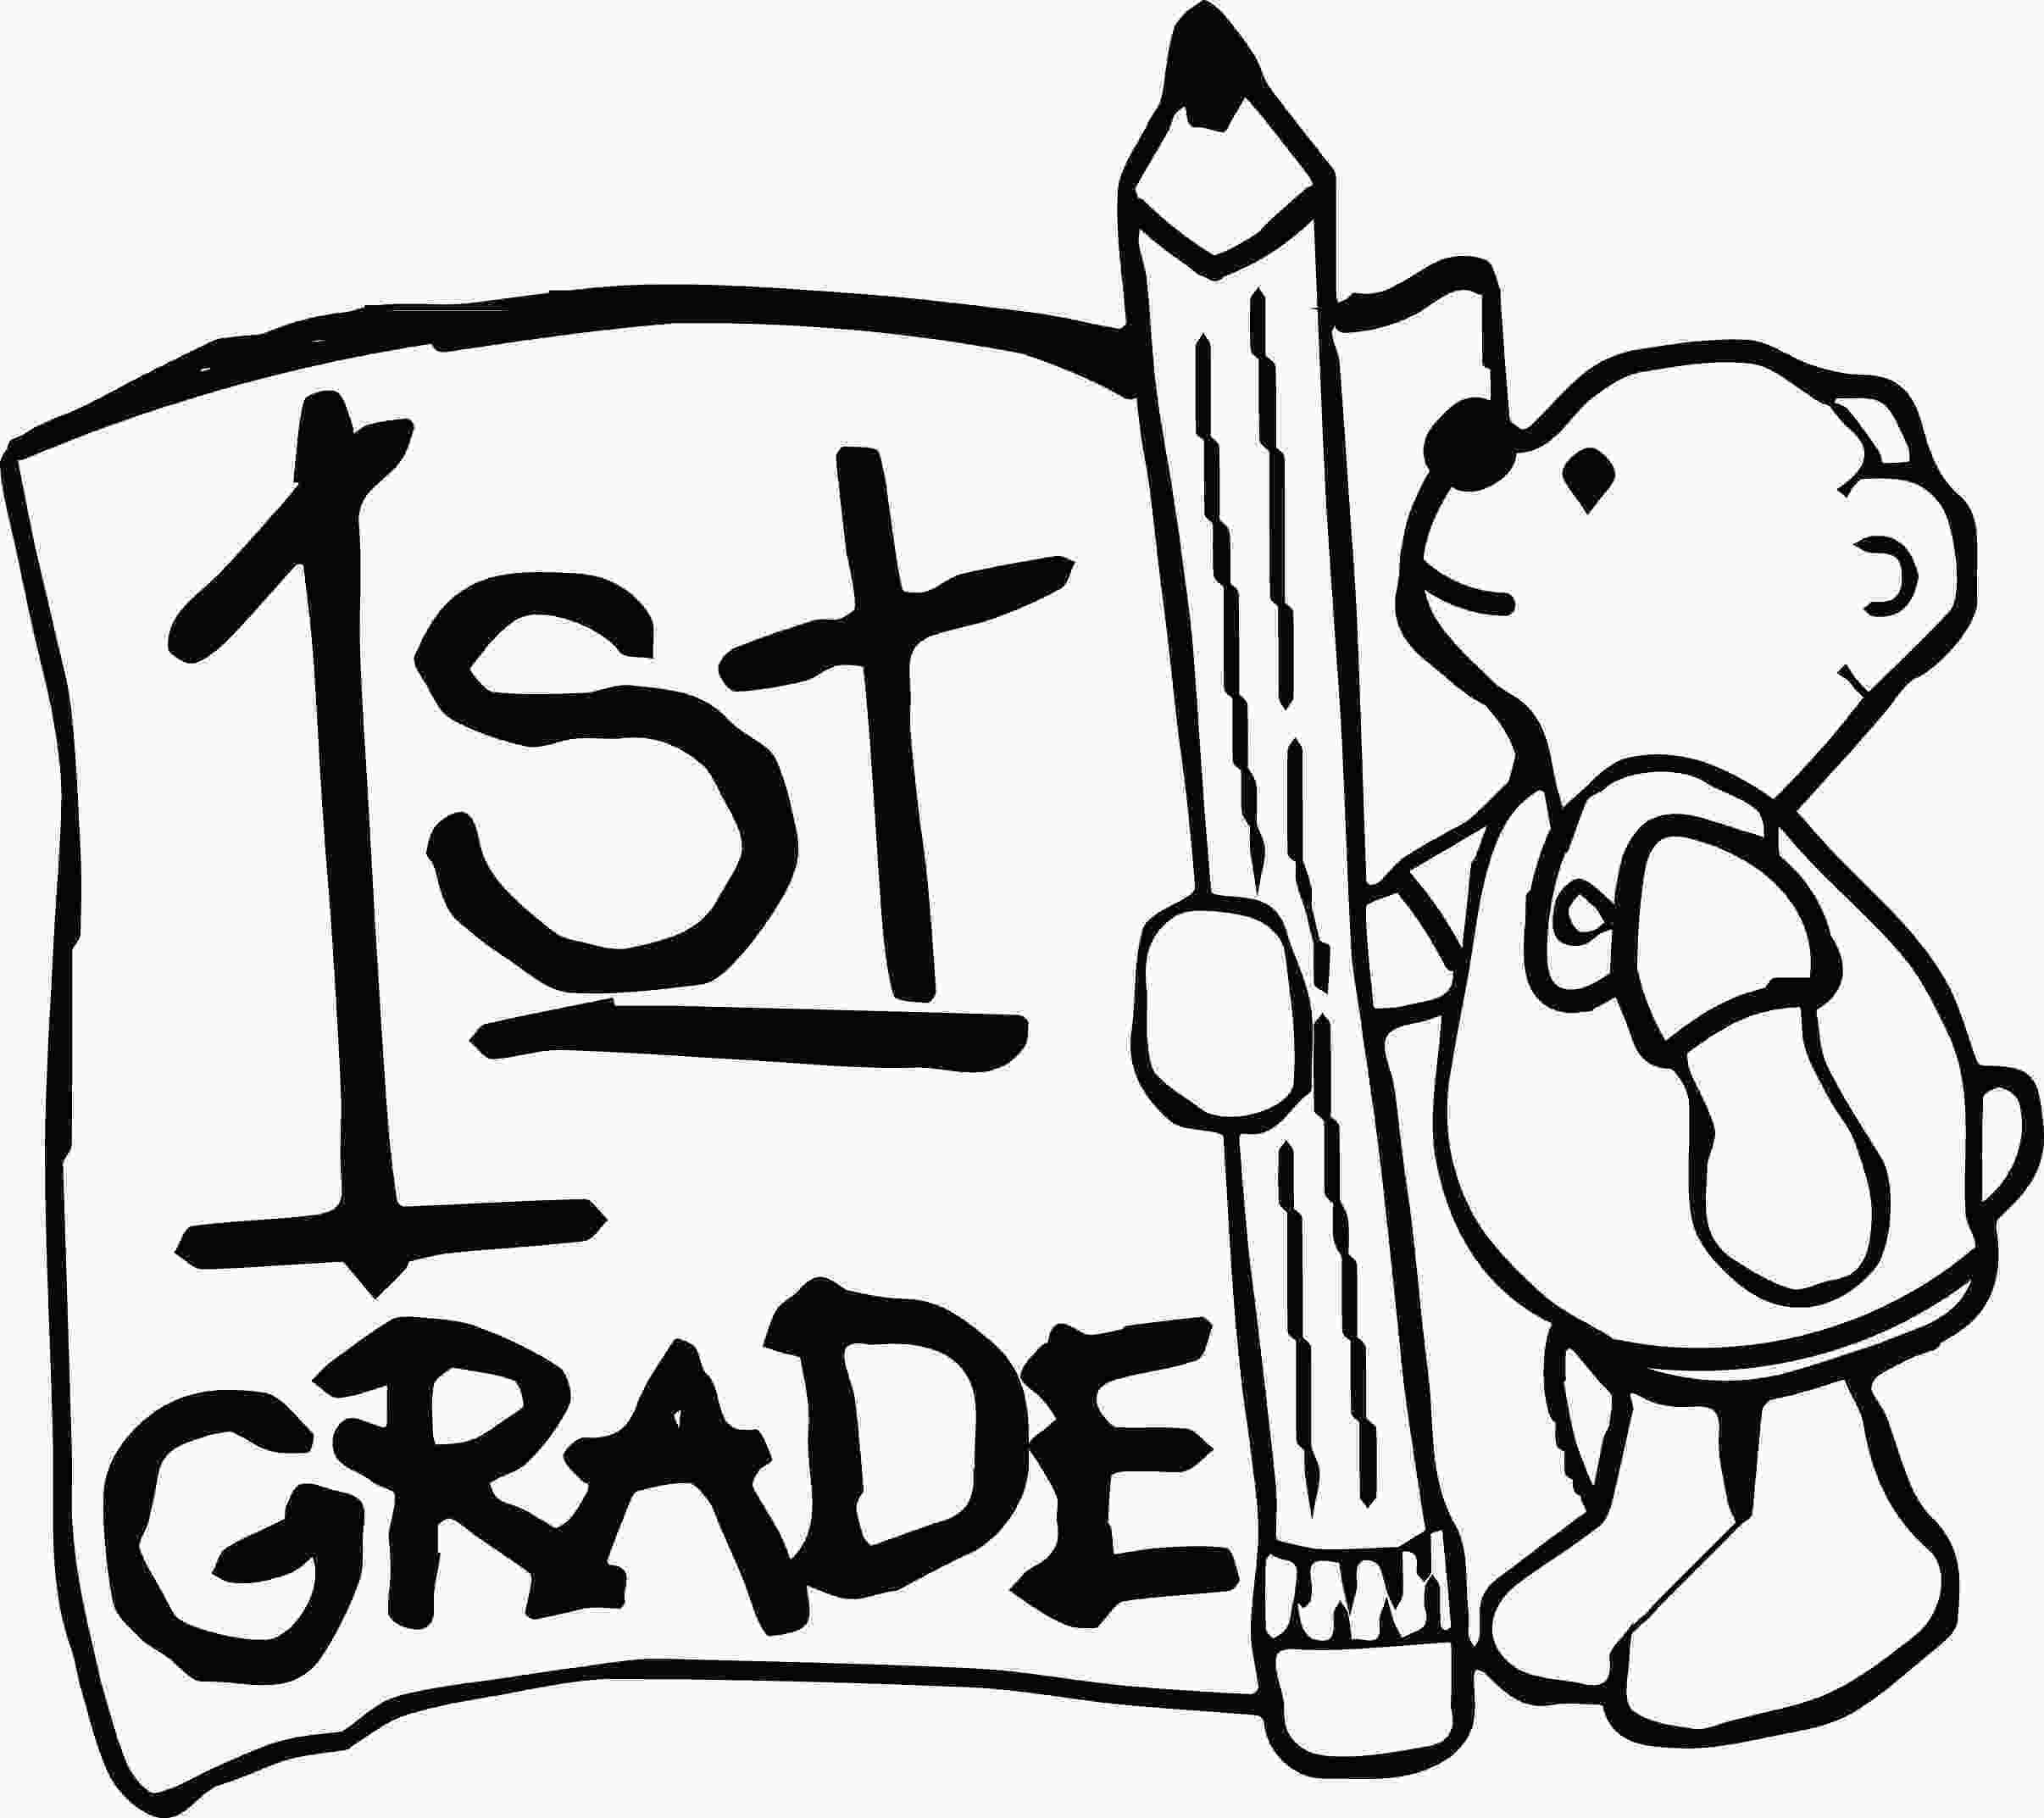 coloring sheets 1st grade 1st grade coloring pages free download best 1st grade